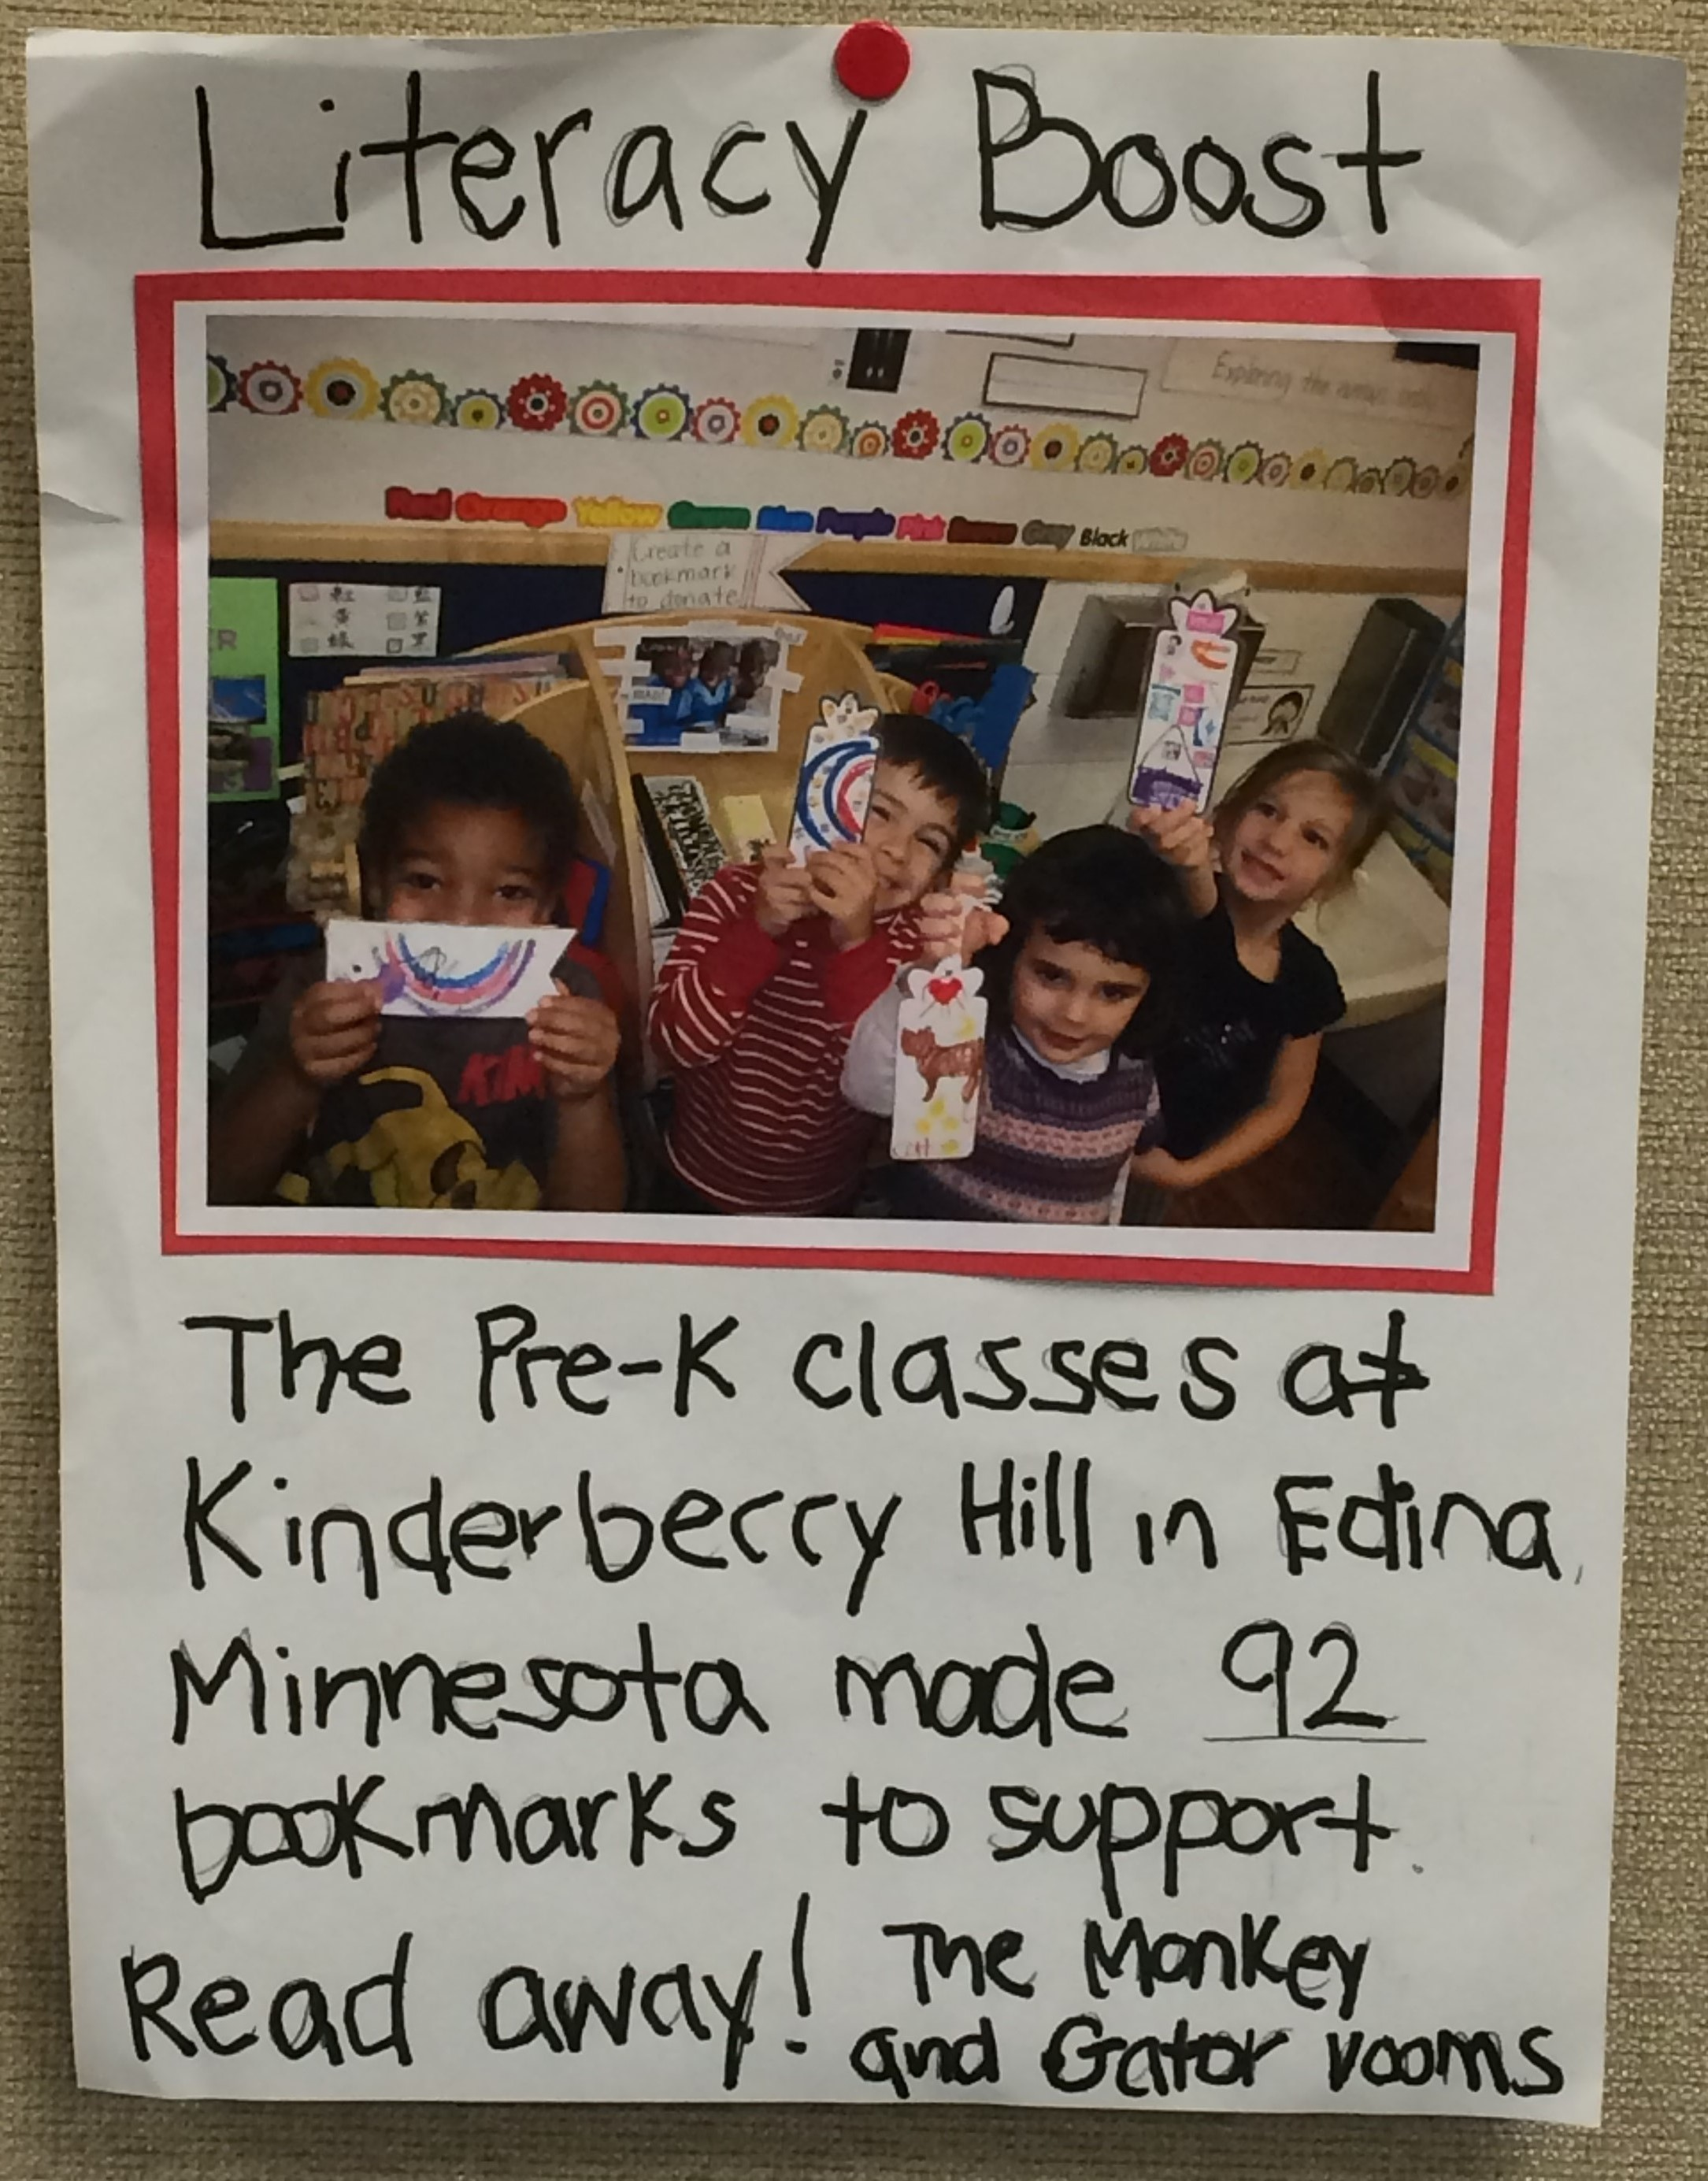 This pre-k class made 92 bookmarks to support their friends around the world in learing to read!